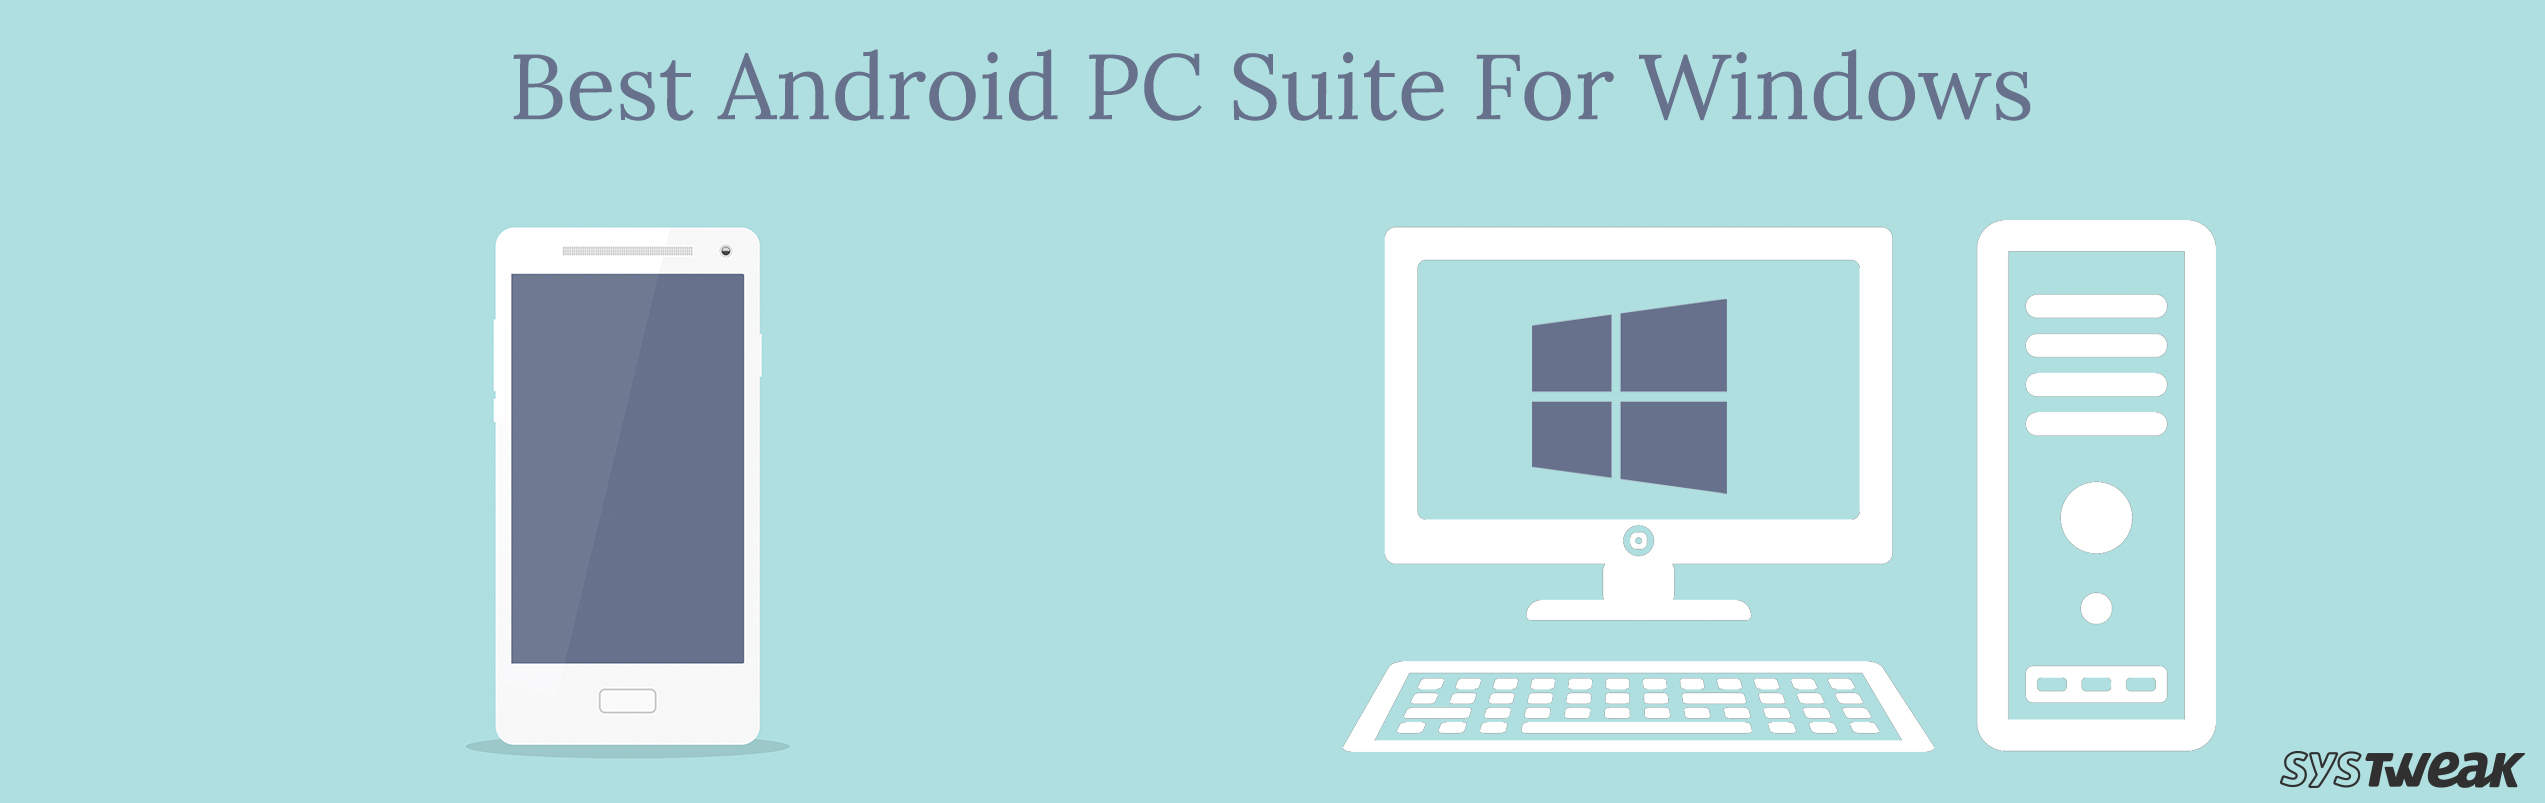 Best Android PC Suite For Windows 2018